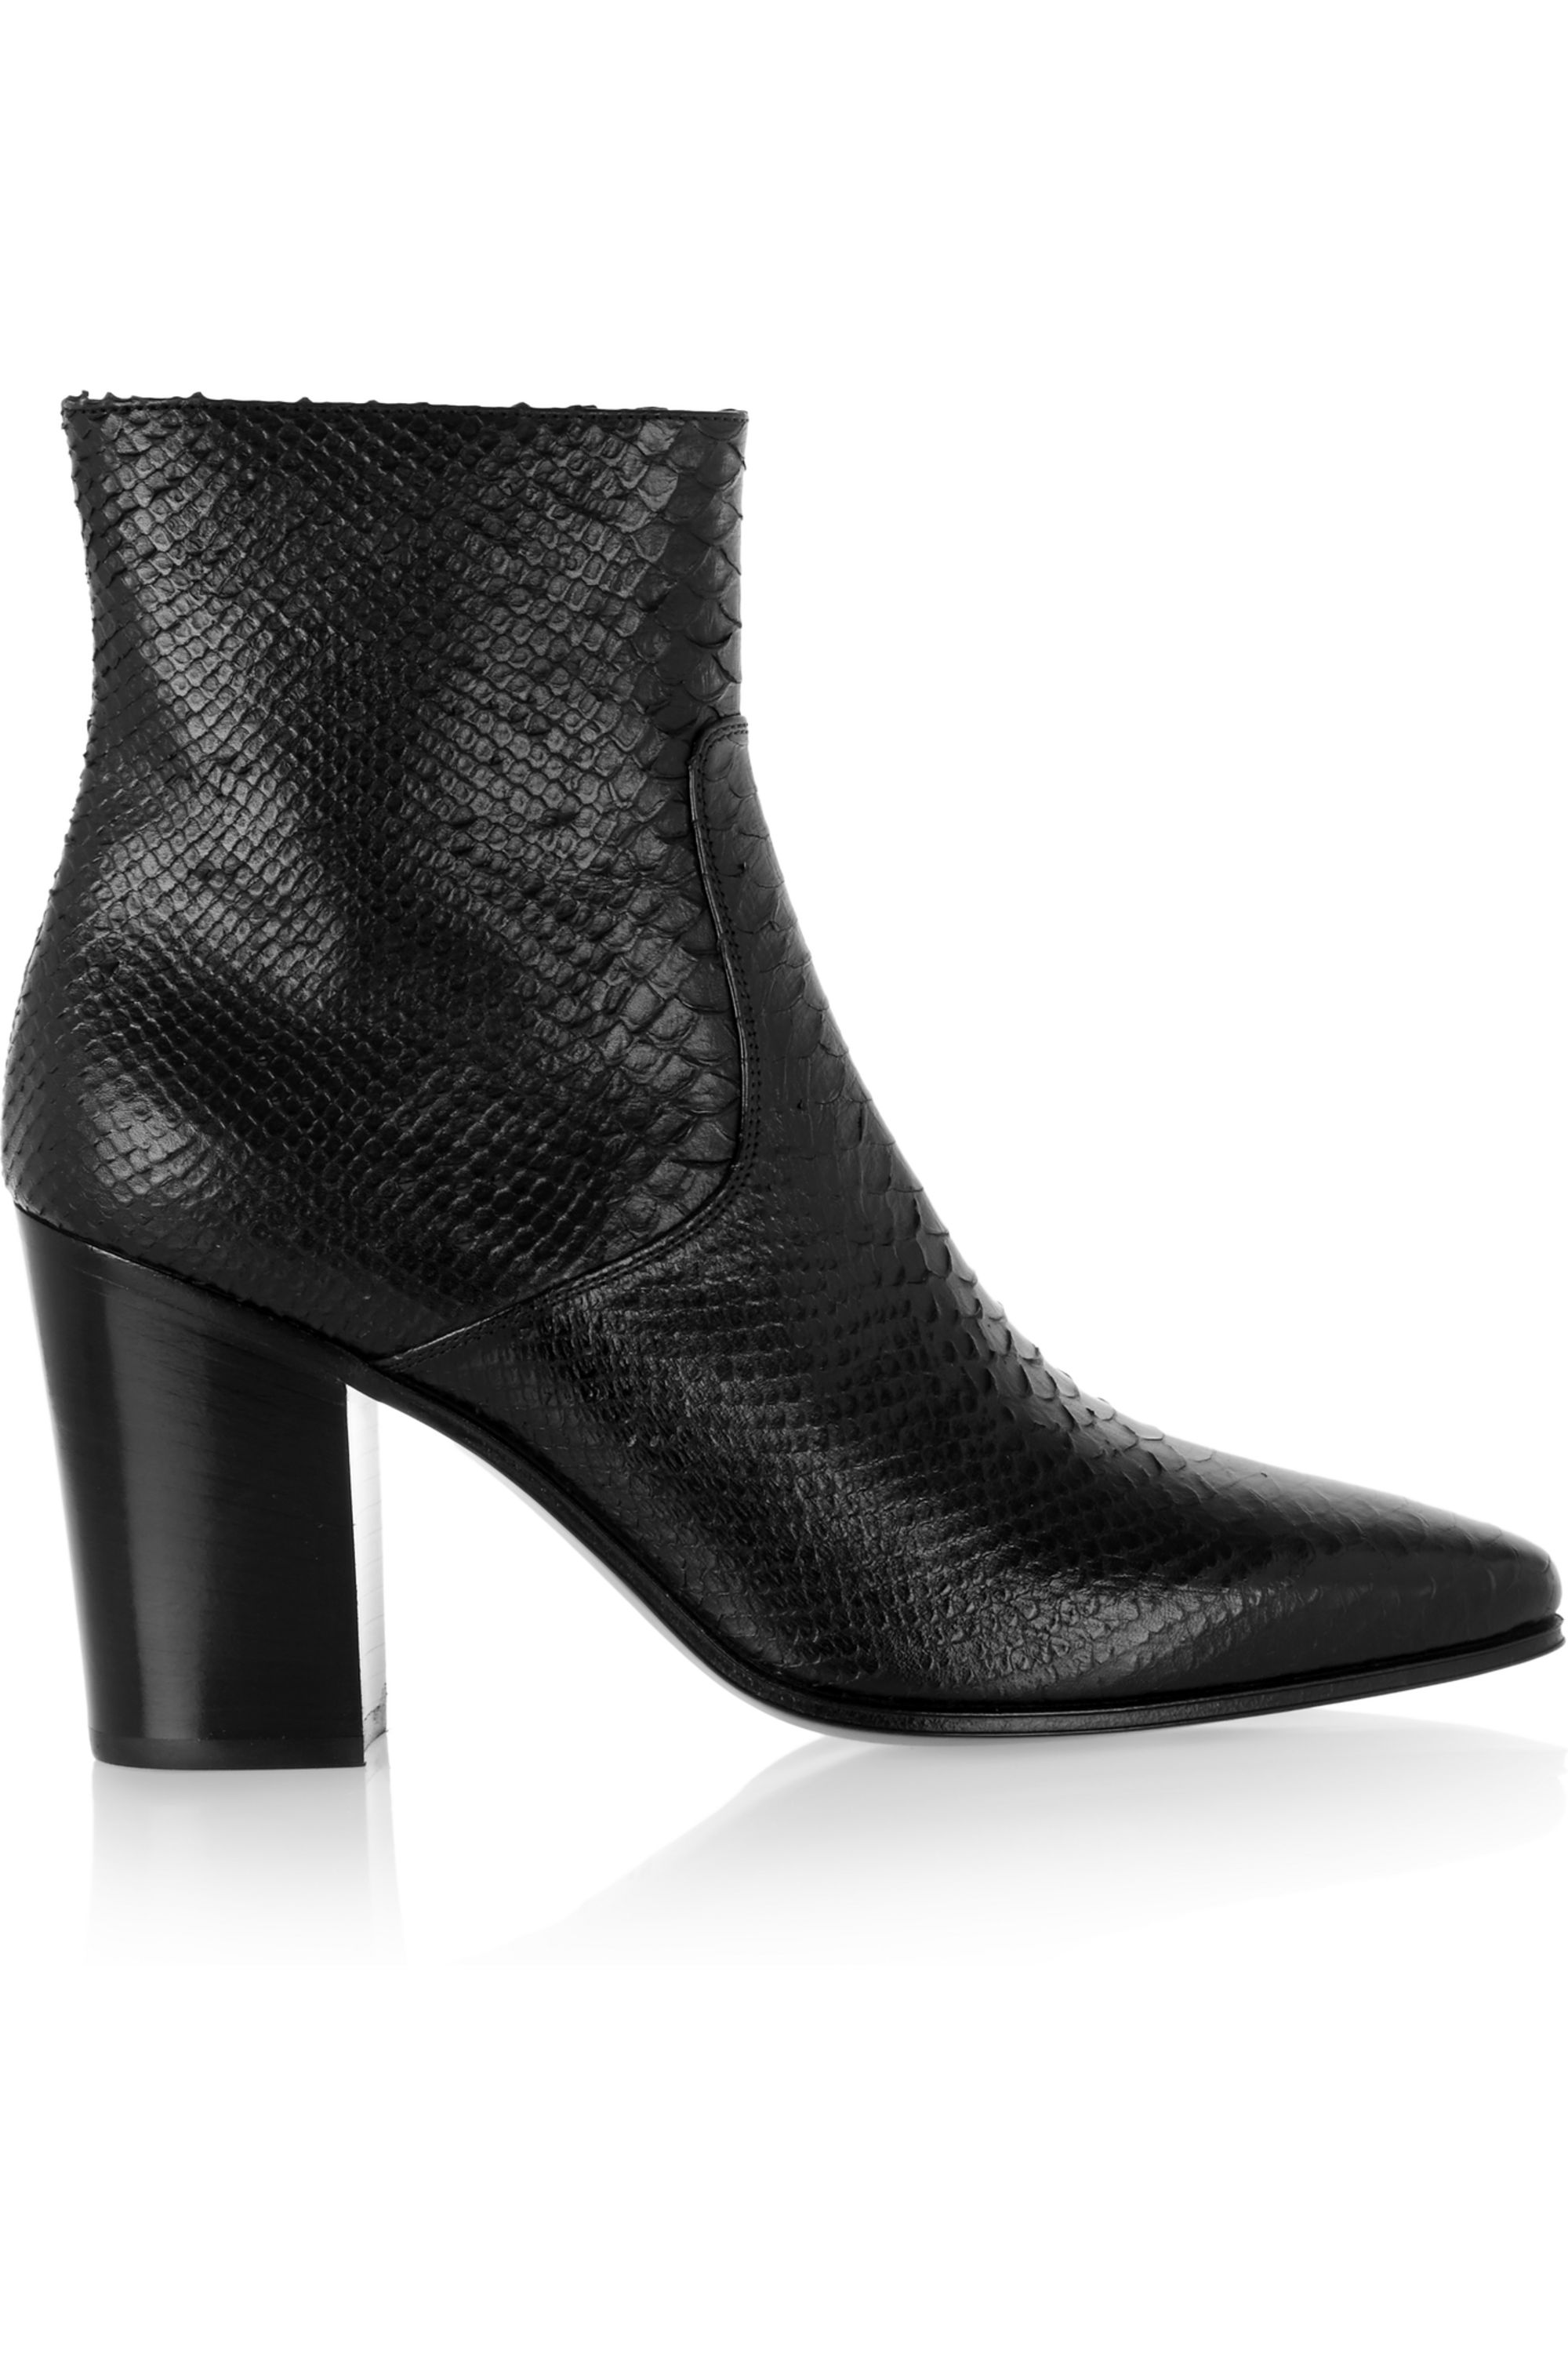 Black Snake-effect leather ankle boots